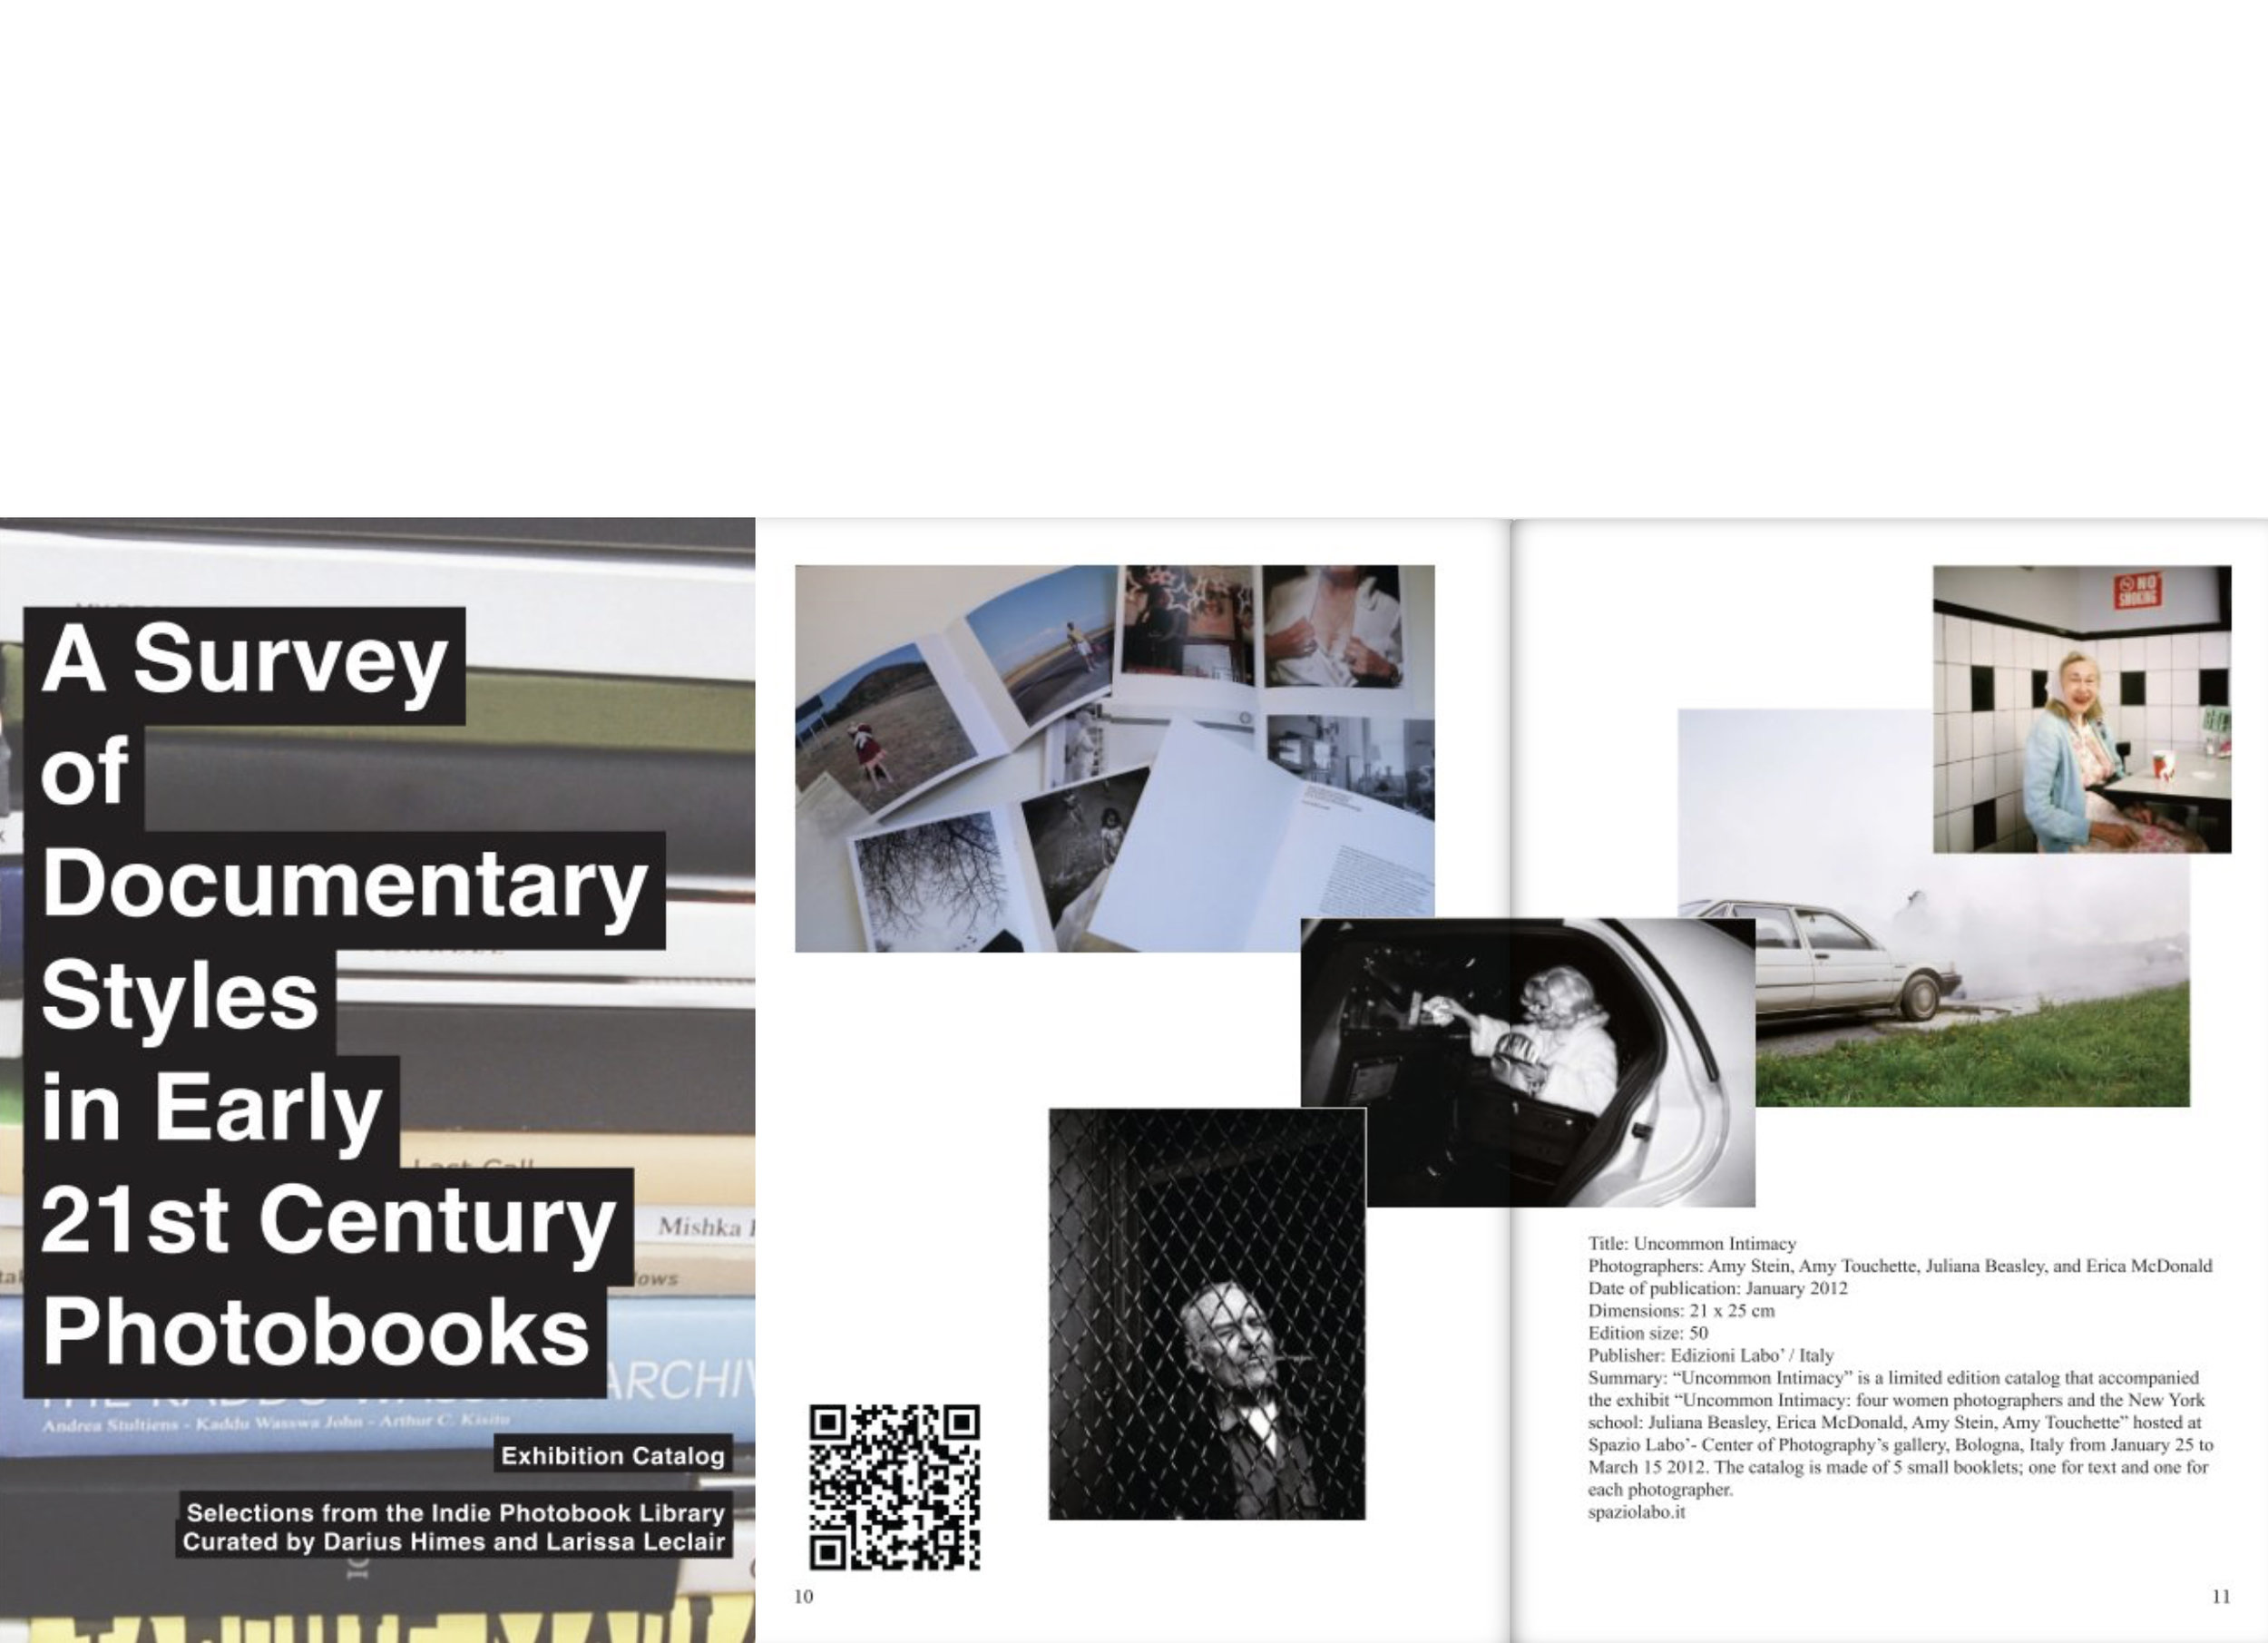 A Survey of Documentary Styles in Early 21st Century Photobooks,Shoot the Arrow - SEPTEMBER 14-OCTOBER 18, 2012: Independent publisher Edizioni Labo's catalogue from